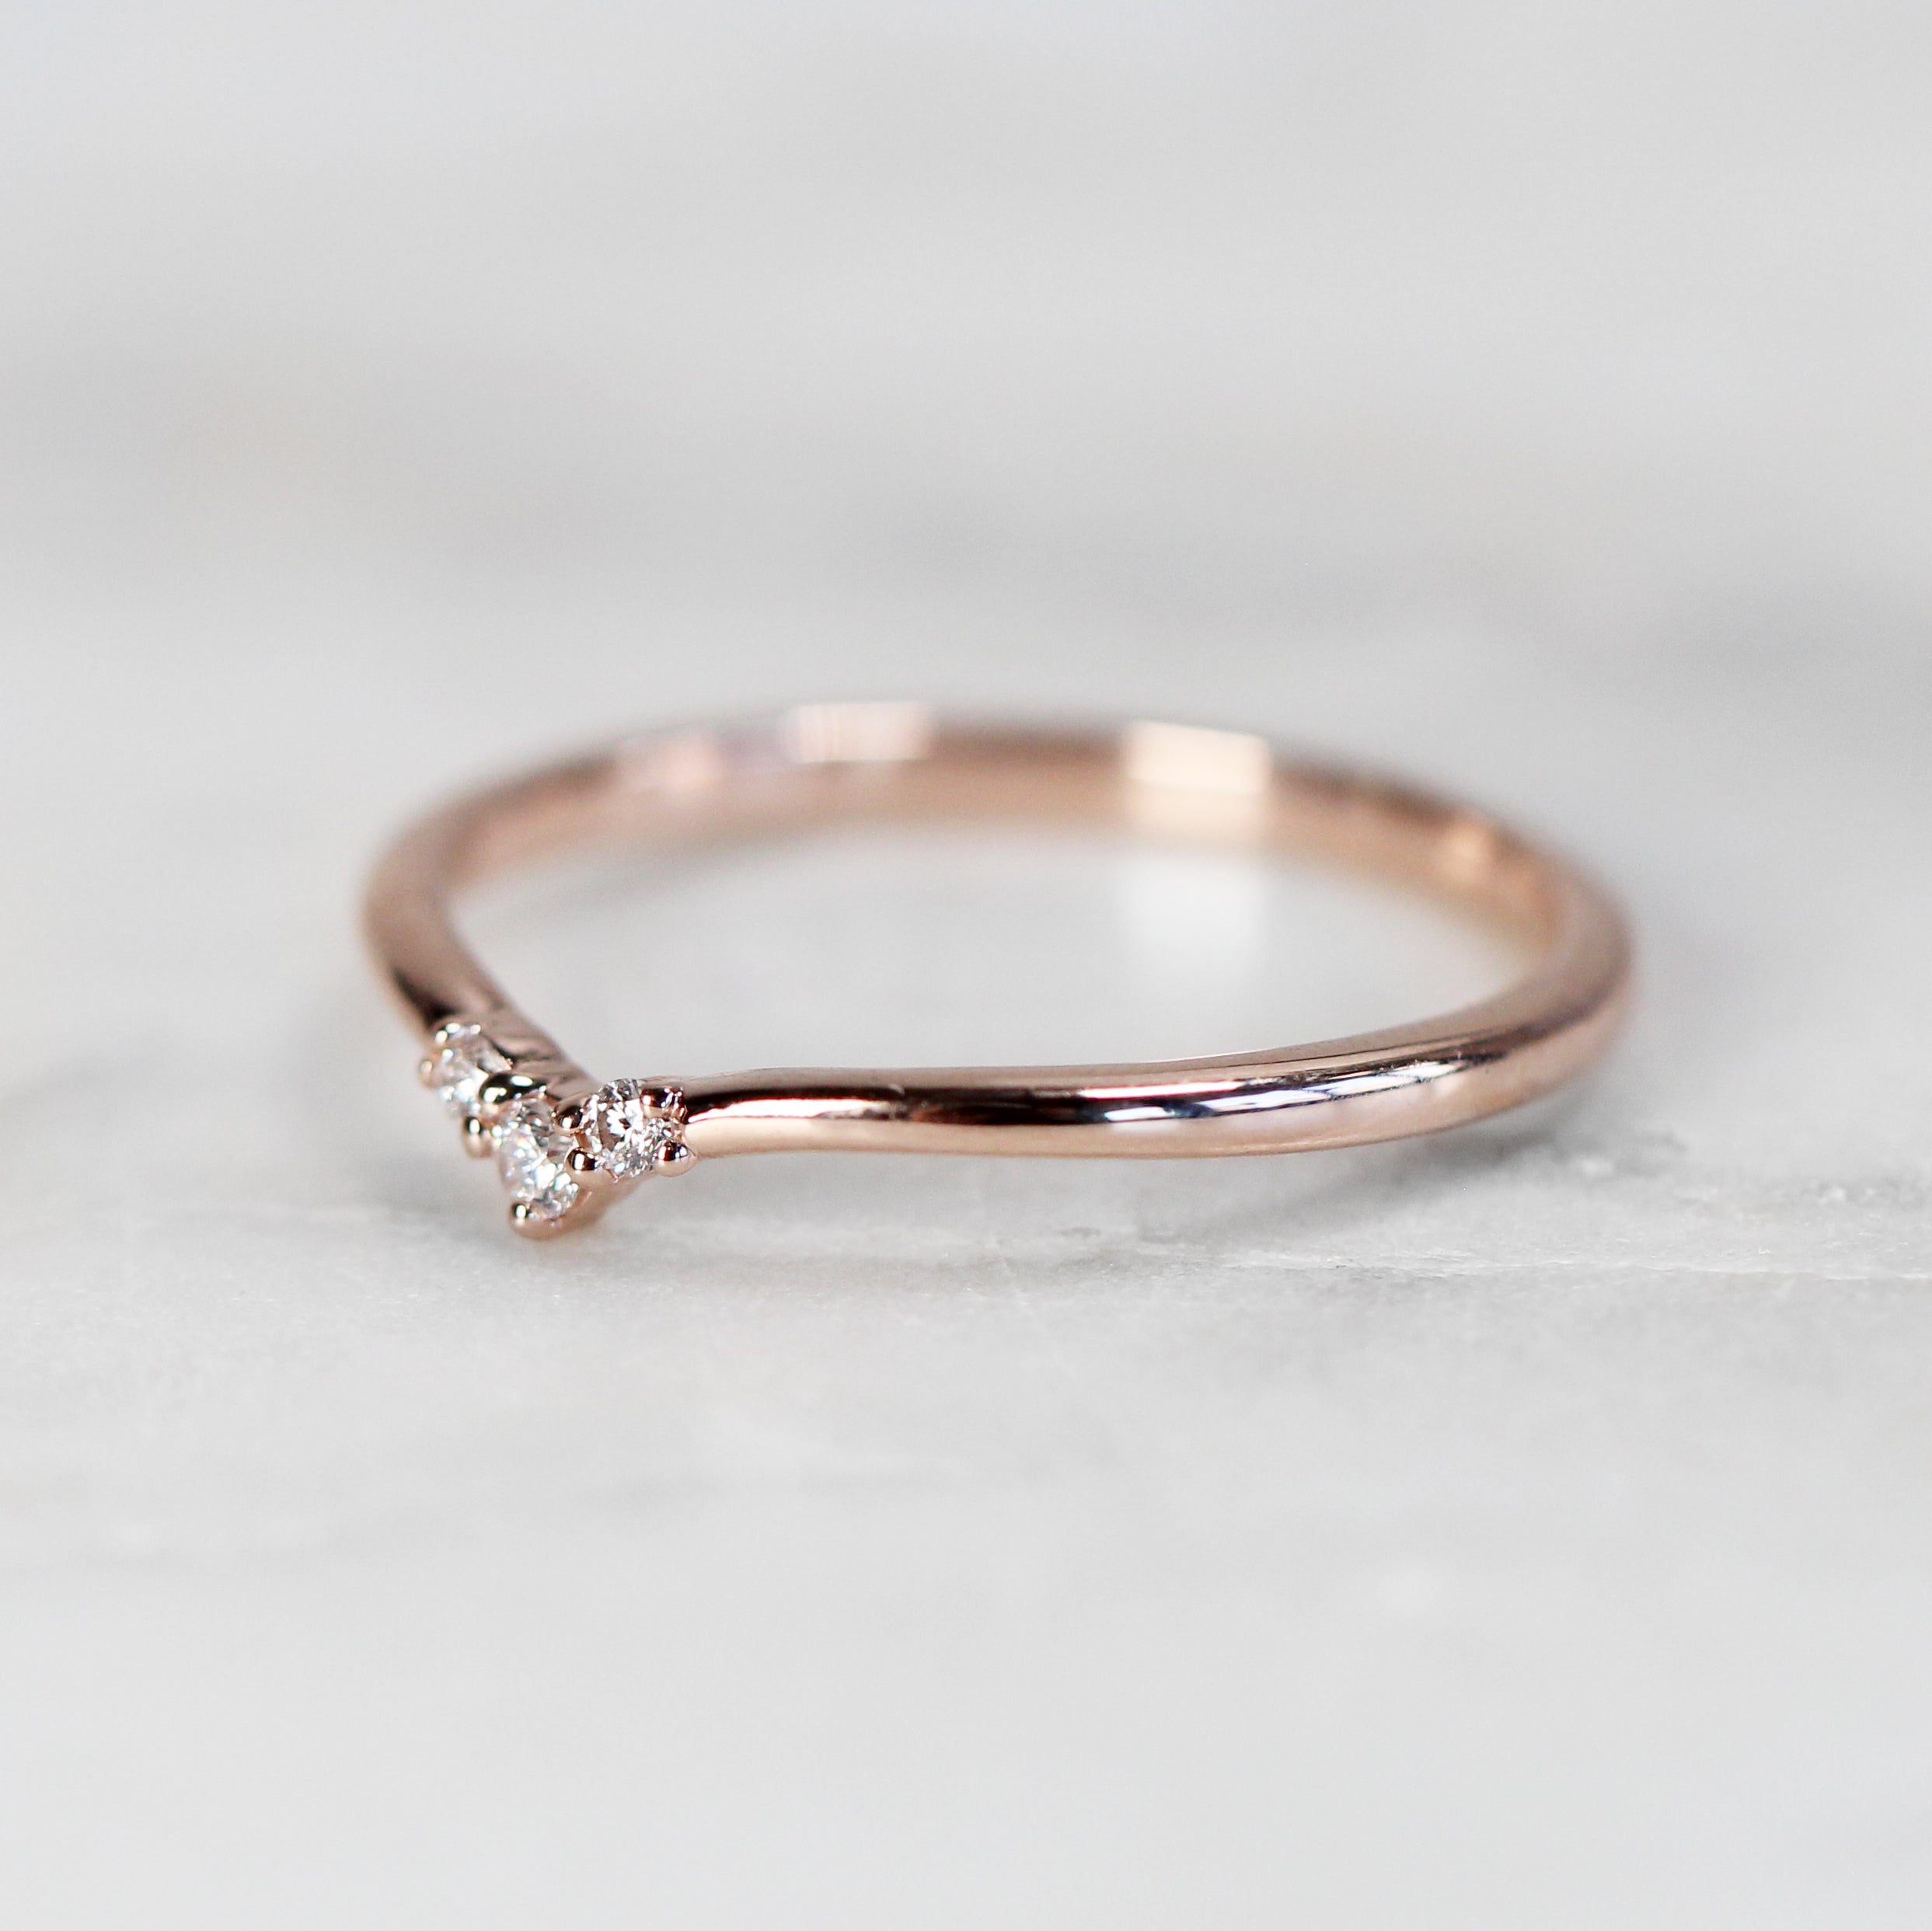 Emmie Contour Point Diamond Wedding Band - Midwinter Co. Alternative Bridal Rings and Modern Fine Jewelry